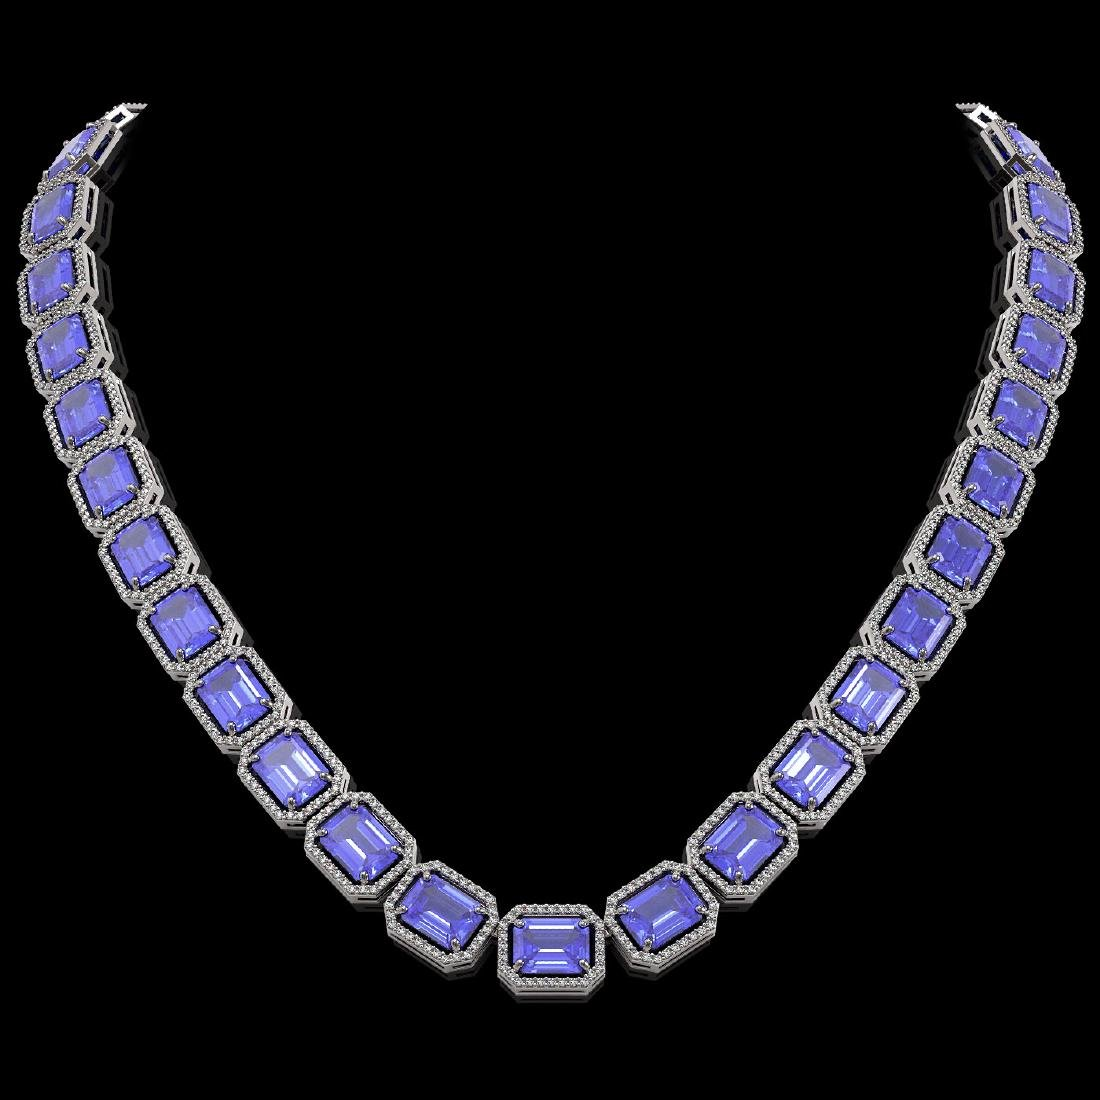 79.99 CTW Tanzanite & Diamond Halo Necklace 10K White